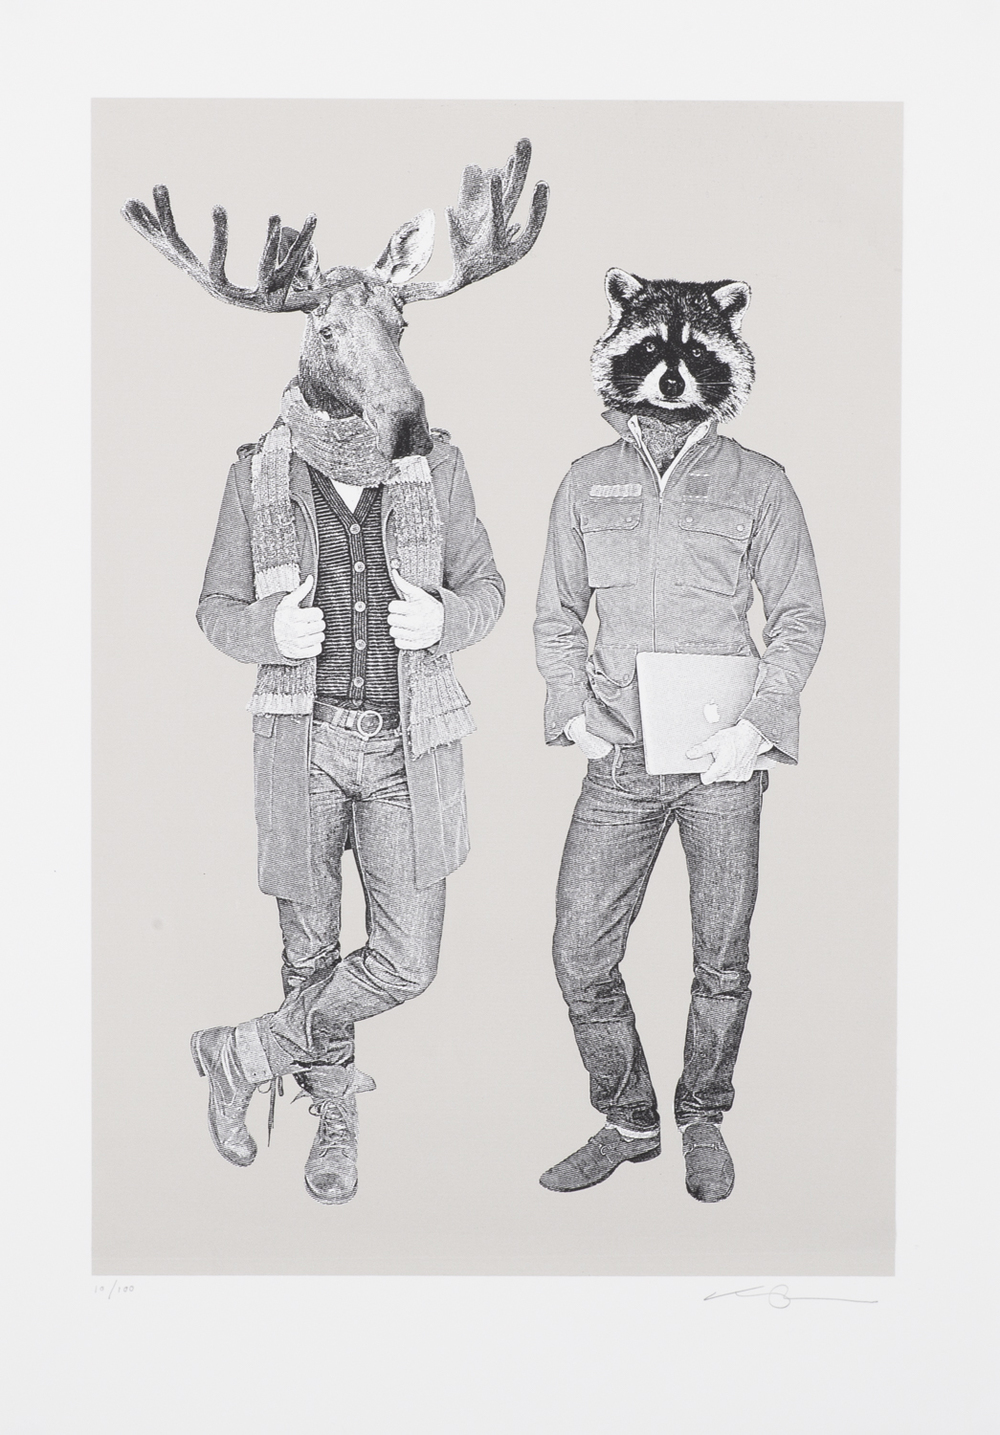 The Moose & Racoon B&W